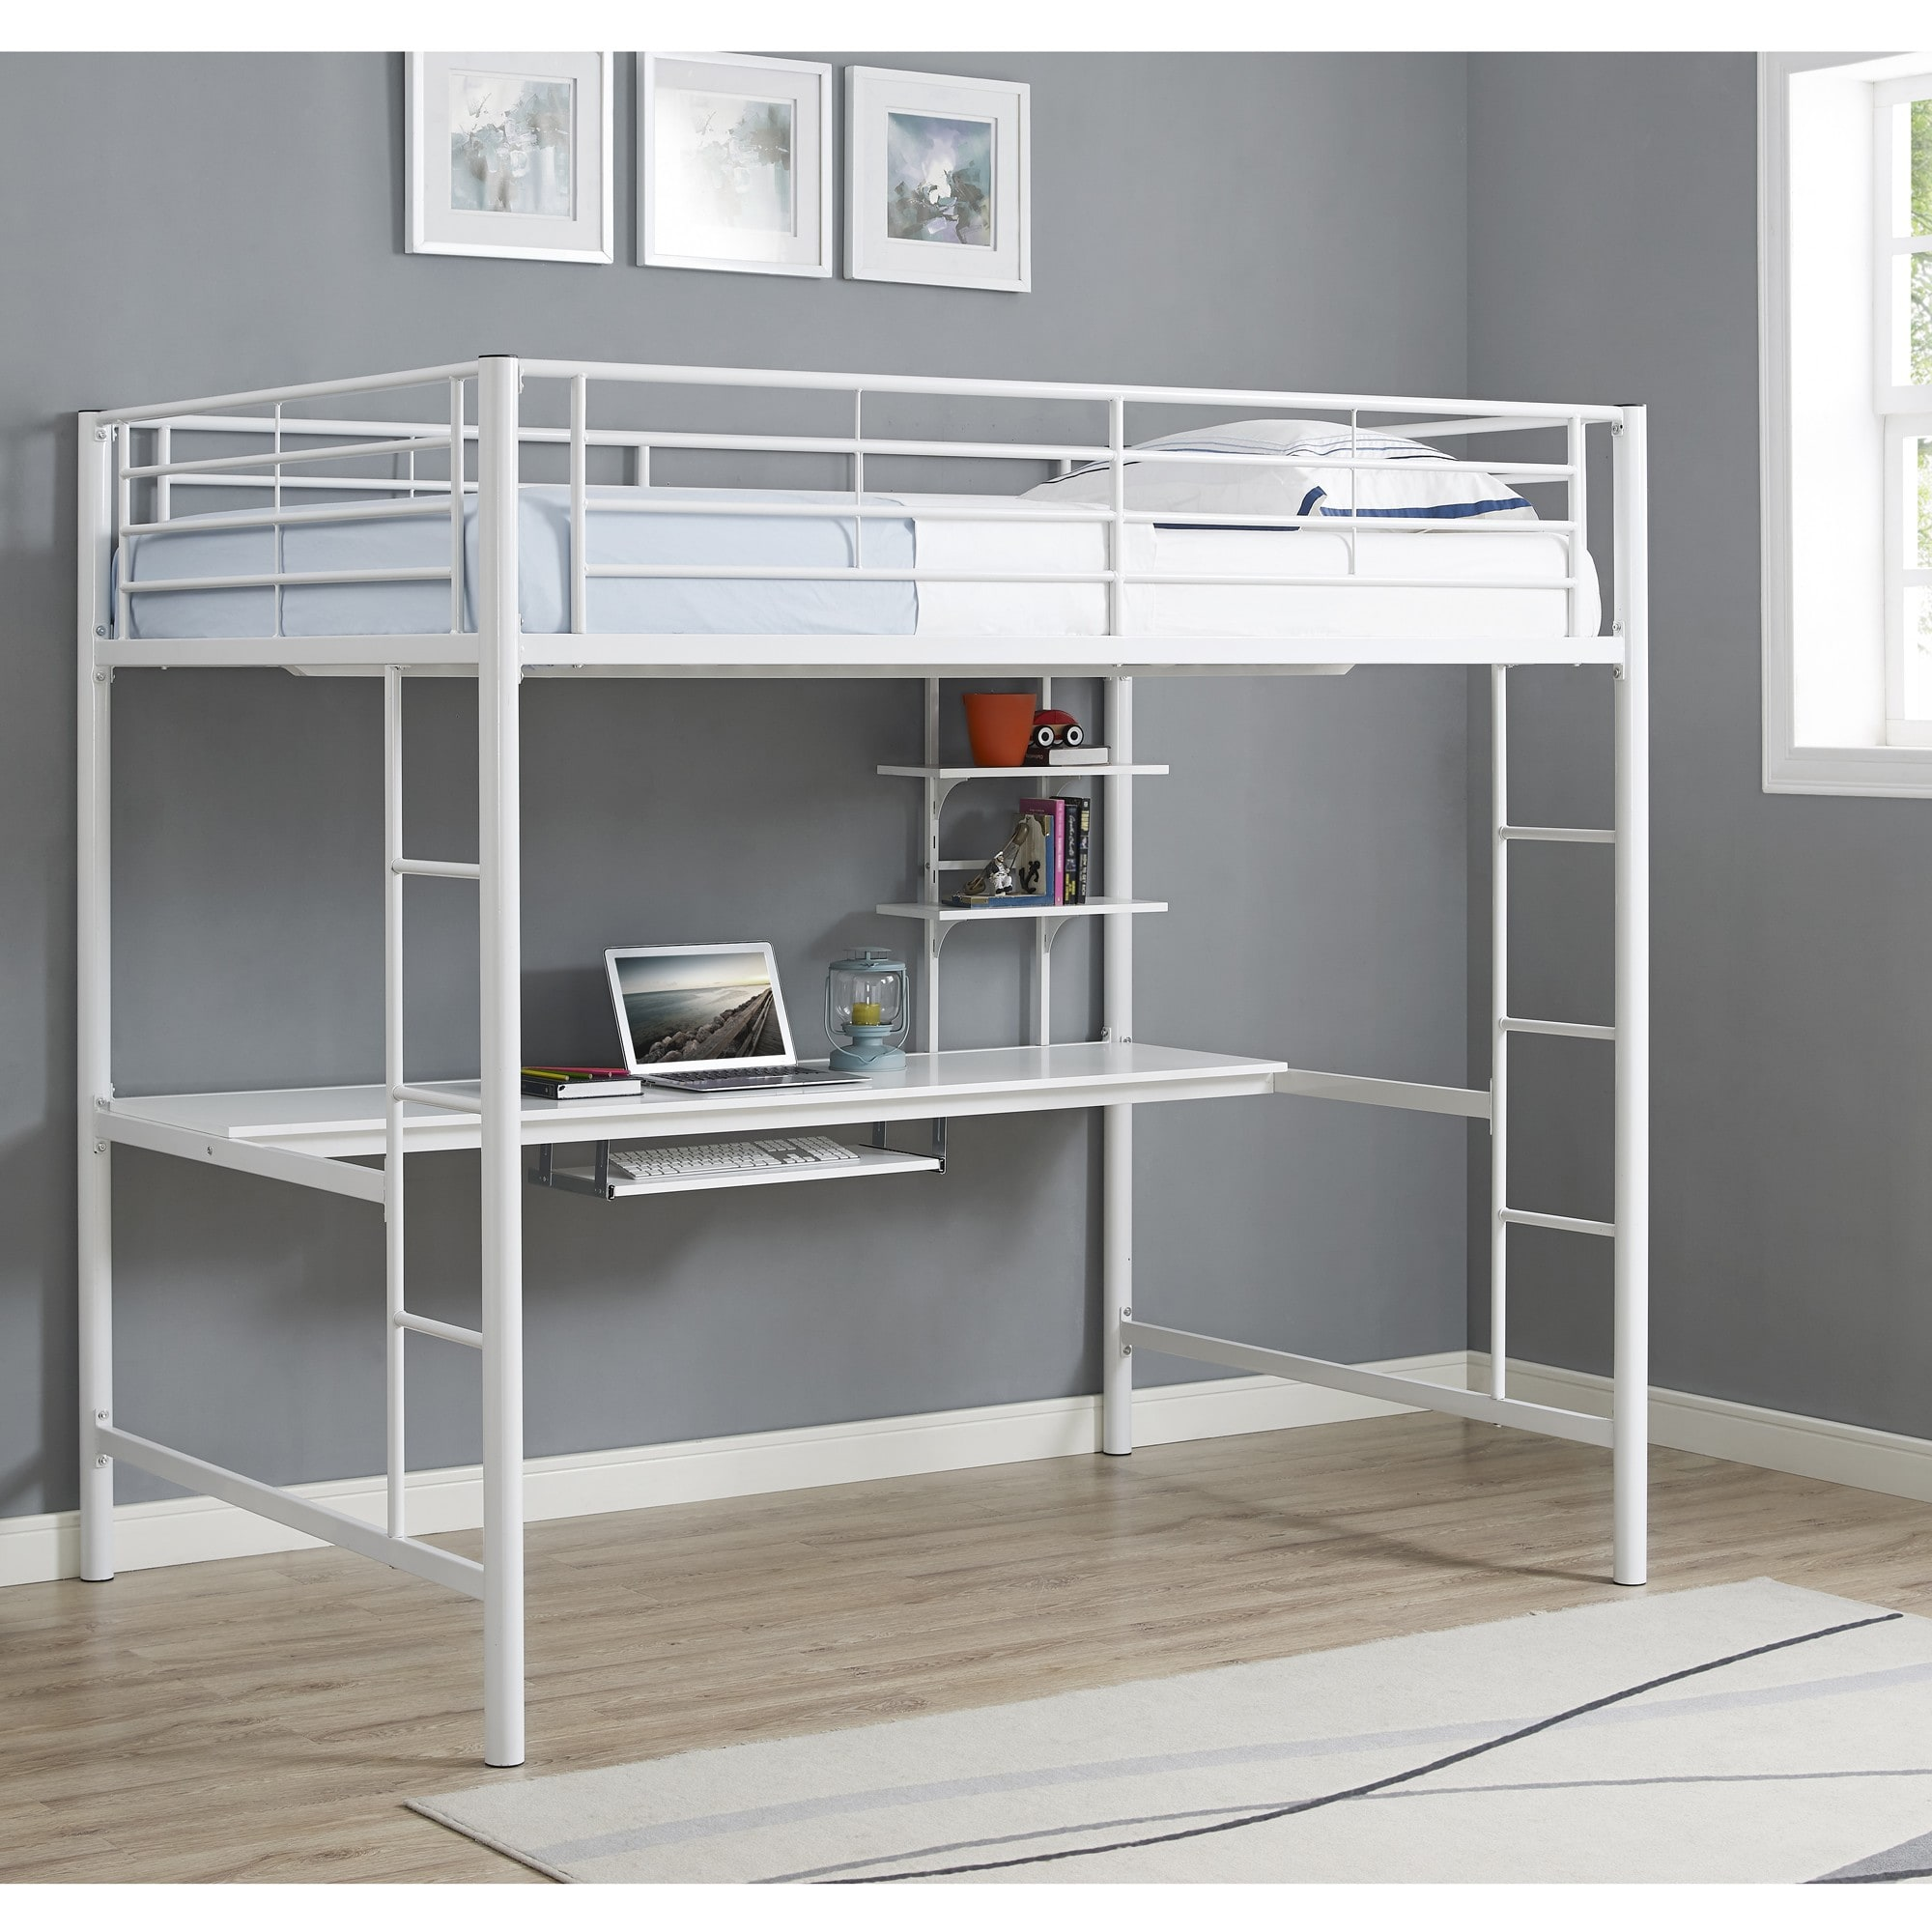 99dcb5c7a0dd Walker Edison BDOZWH. White Premium Metal Full Size Loft Bed with Wood  Workstation